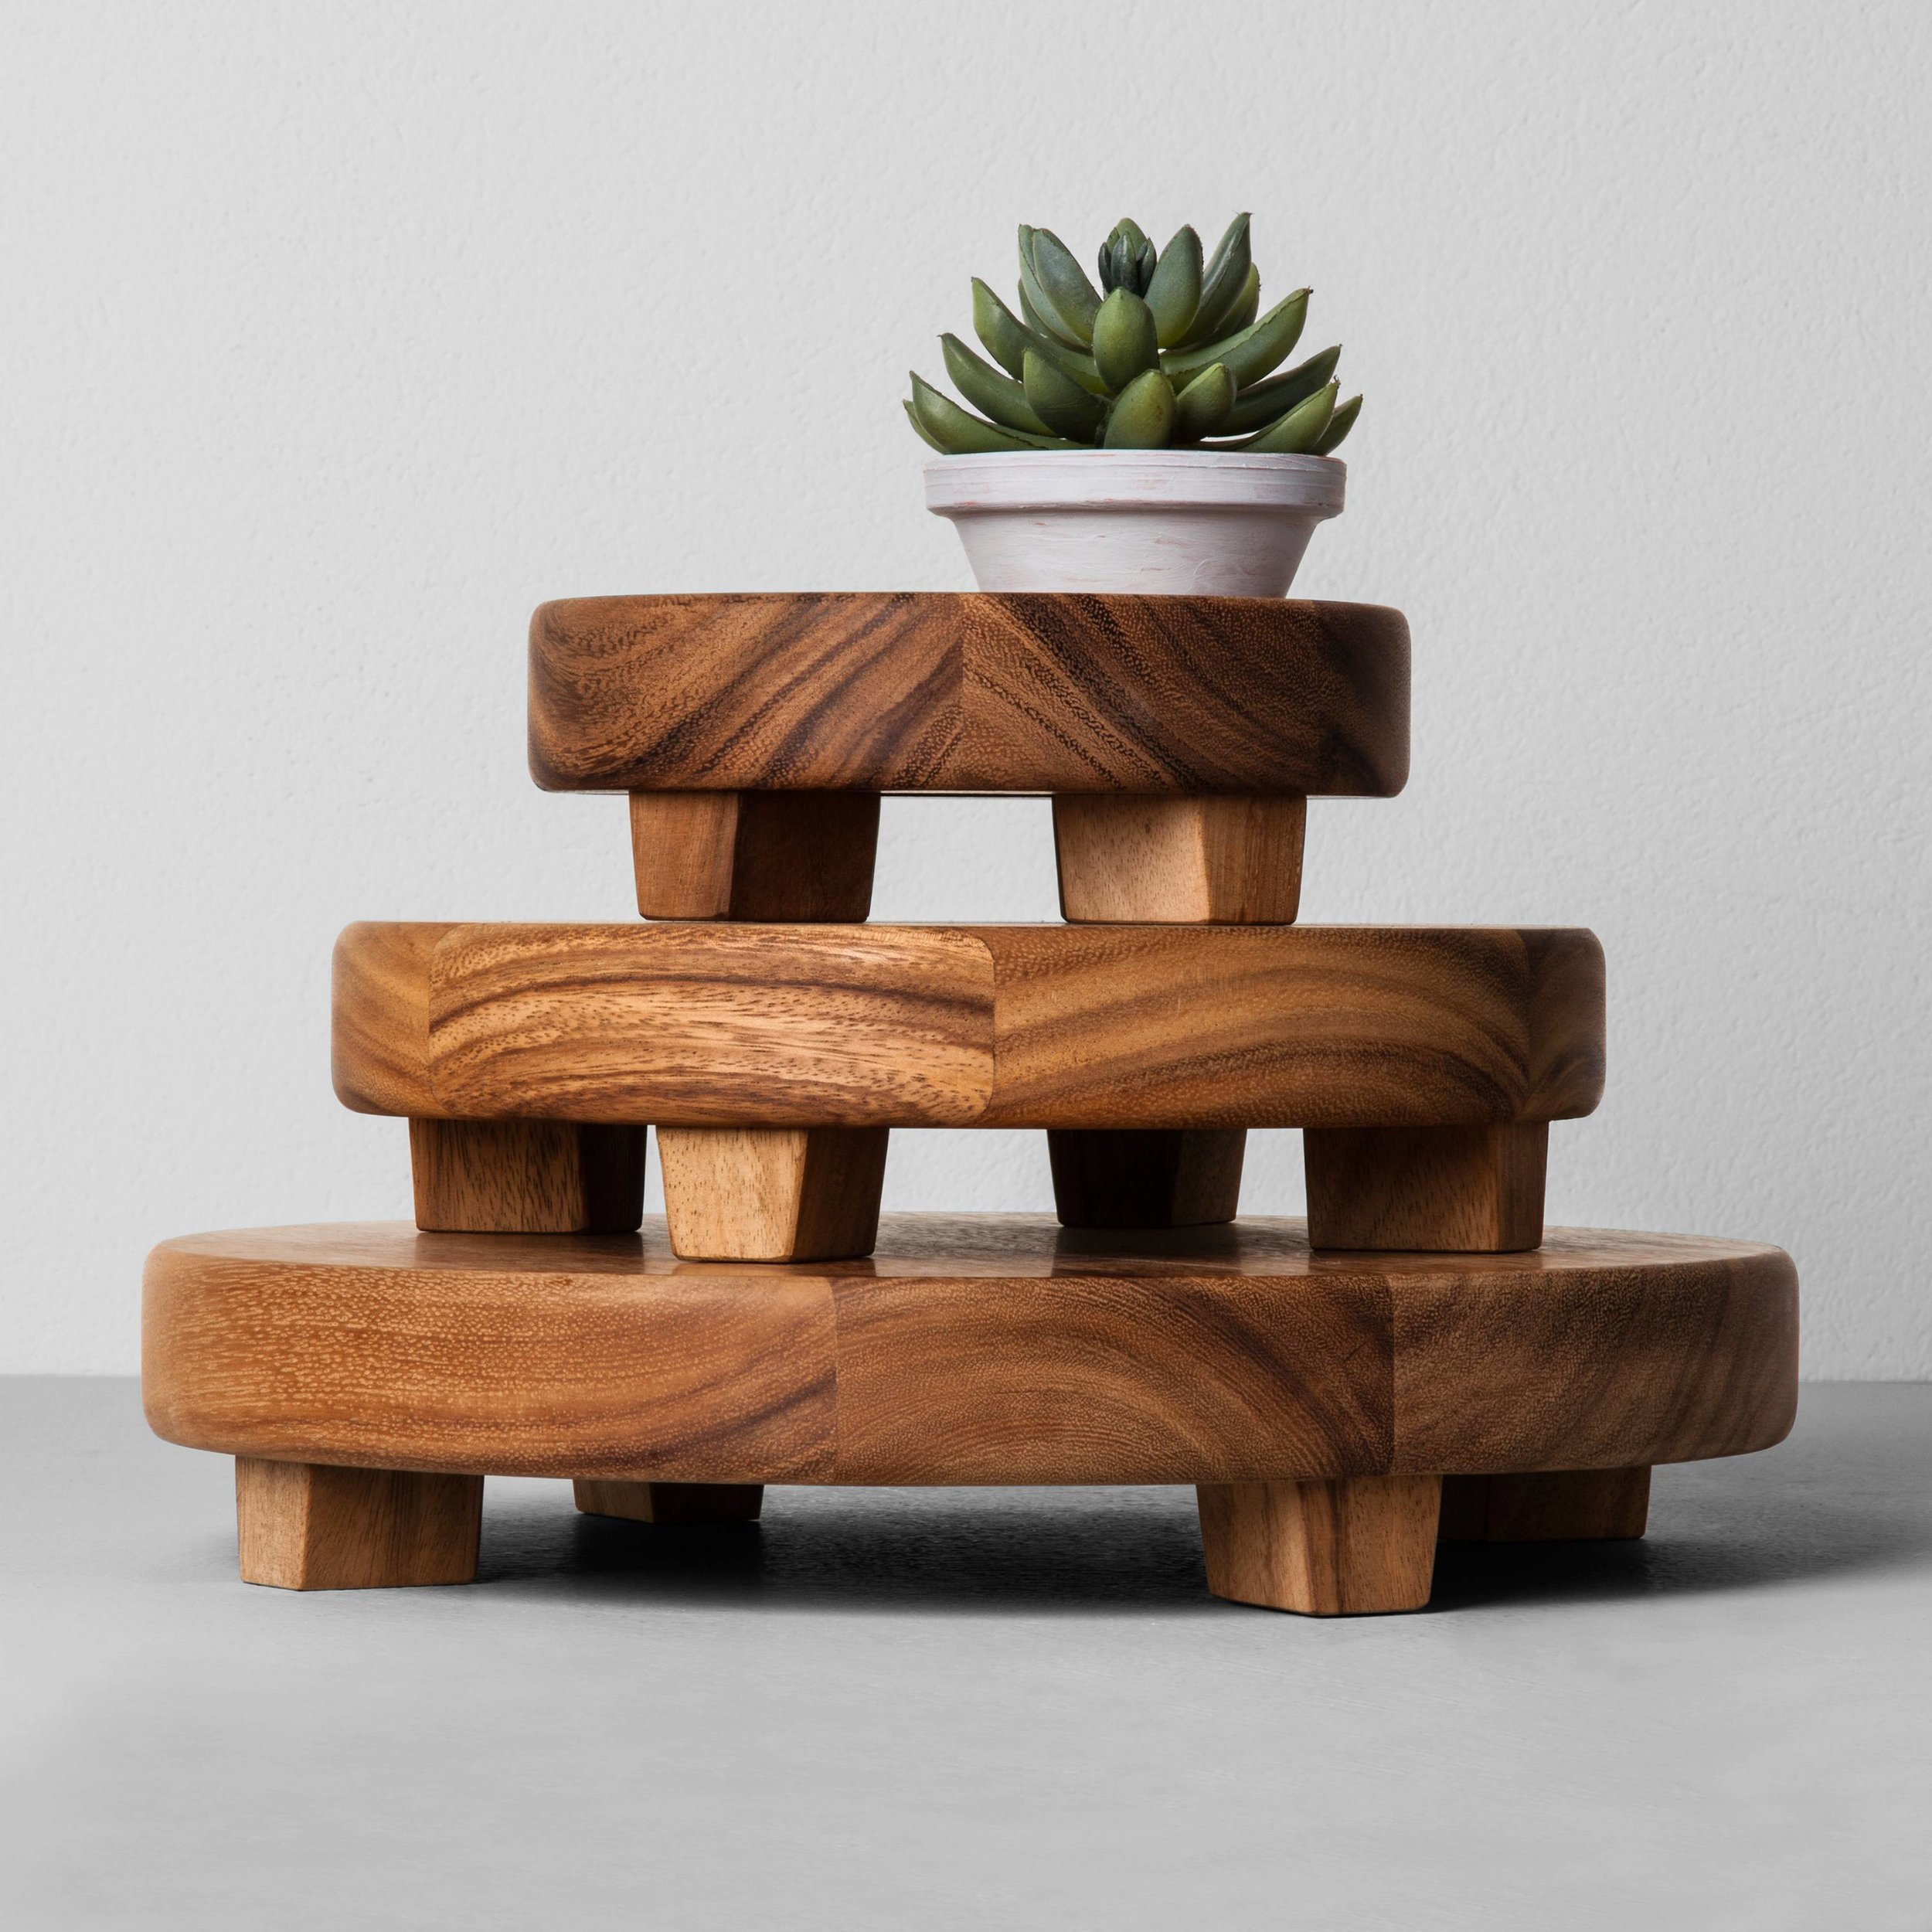 Wooden Tray  - These stacked wooden trays are great as an accent piece throughout your house to display your favorite knick backs or used as a platter to host your next get together.